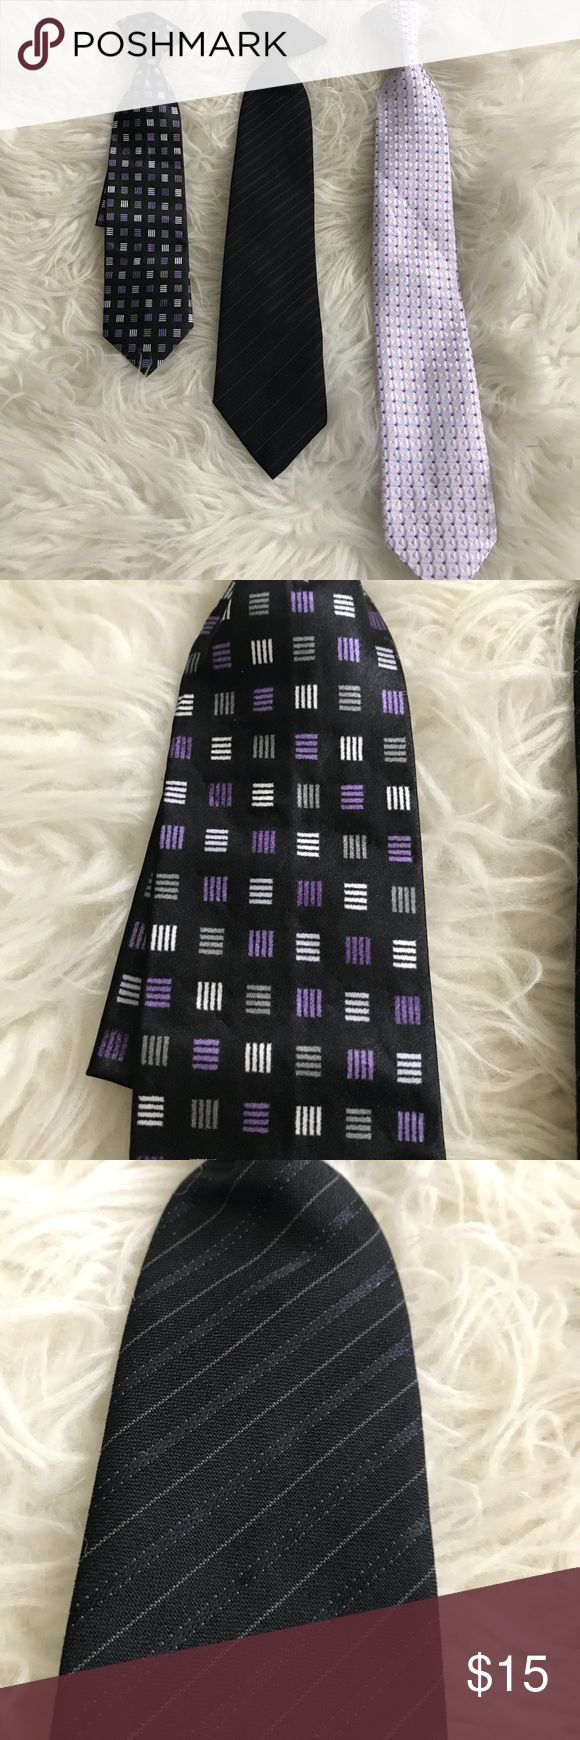 Boys clip on ties In great condition. Only worn once each. No flaws. Measurements shown in pictures. All Clip one. Accessories Ties